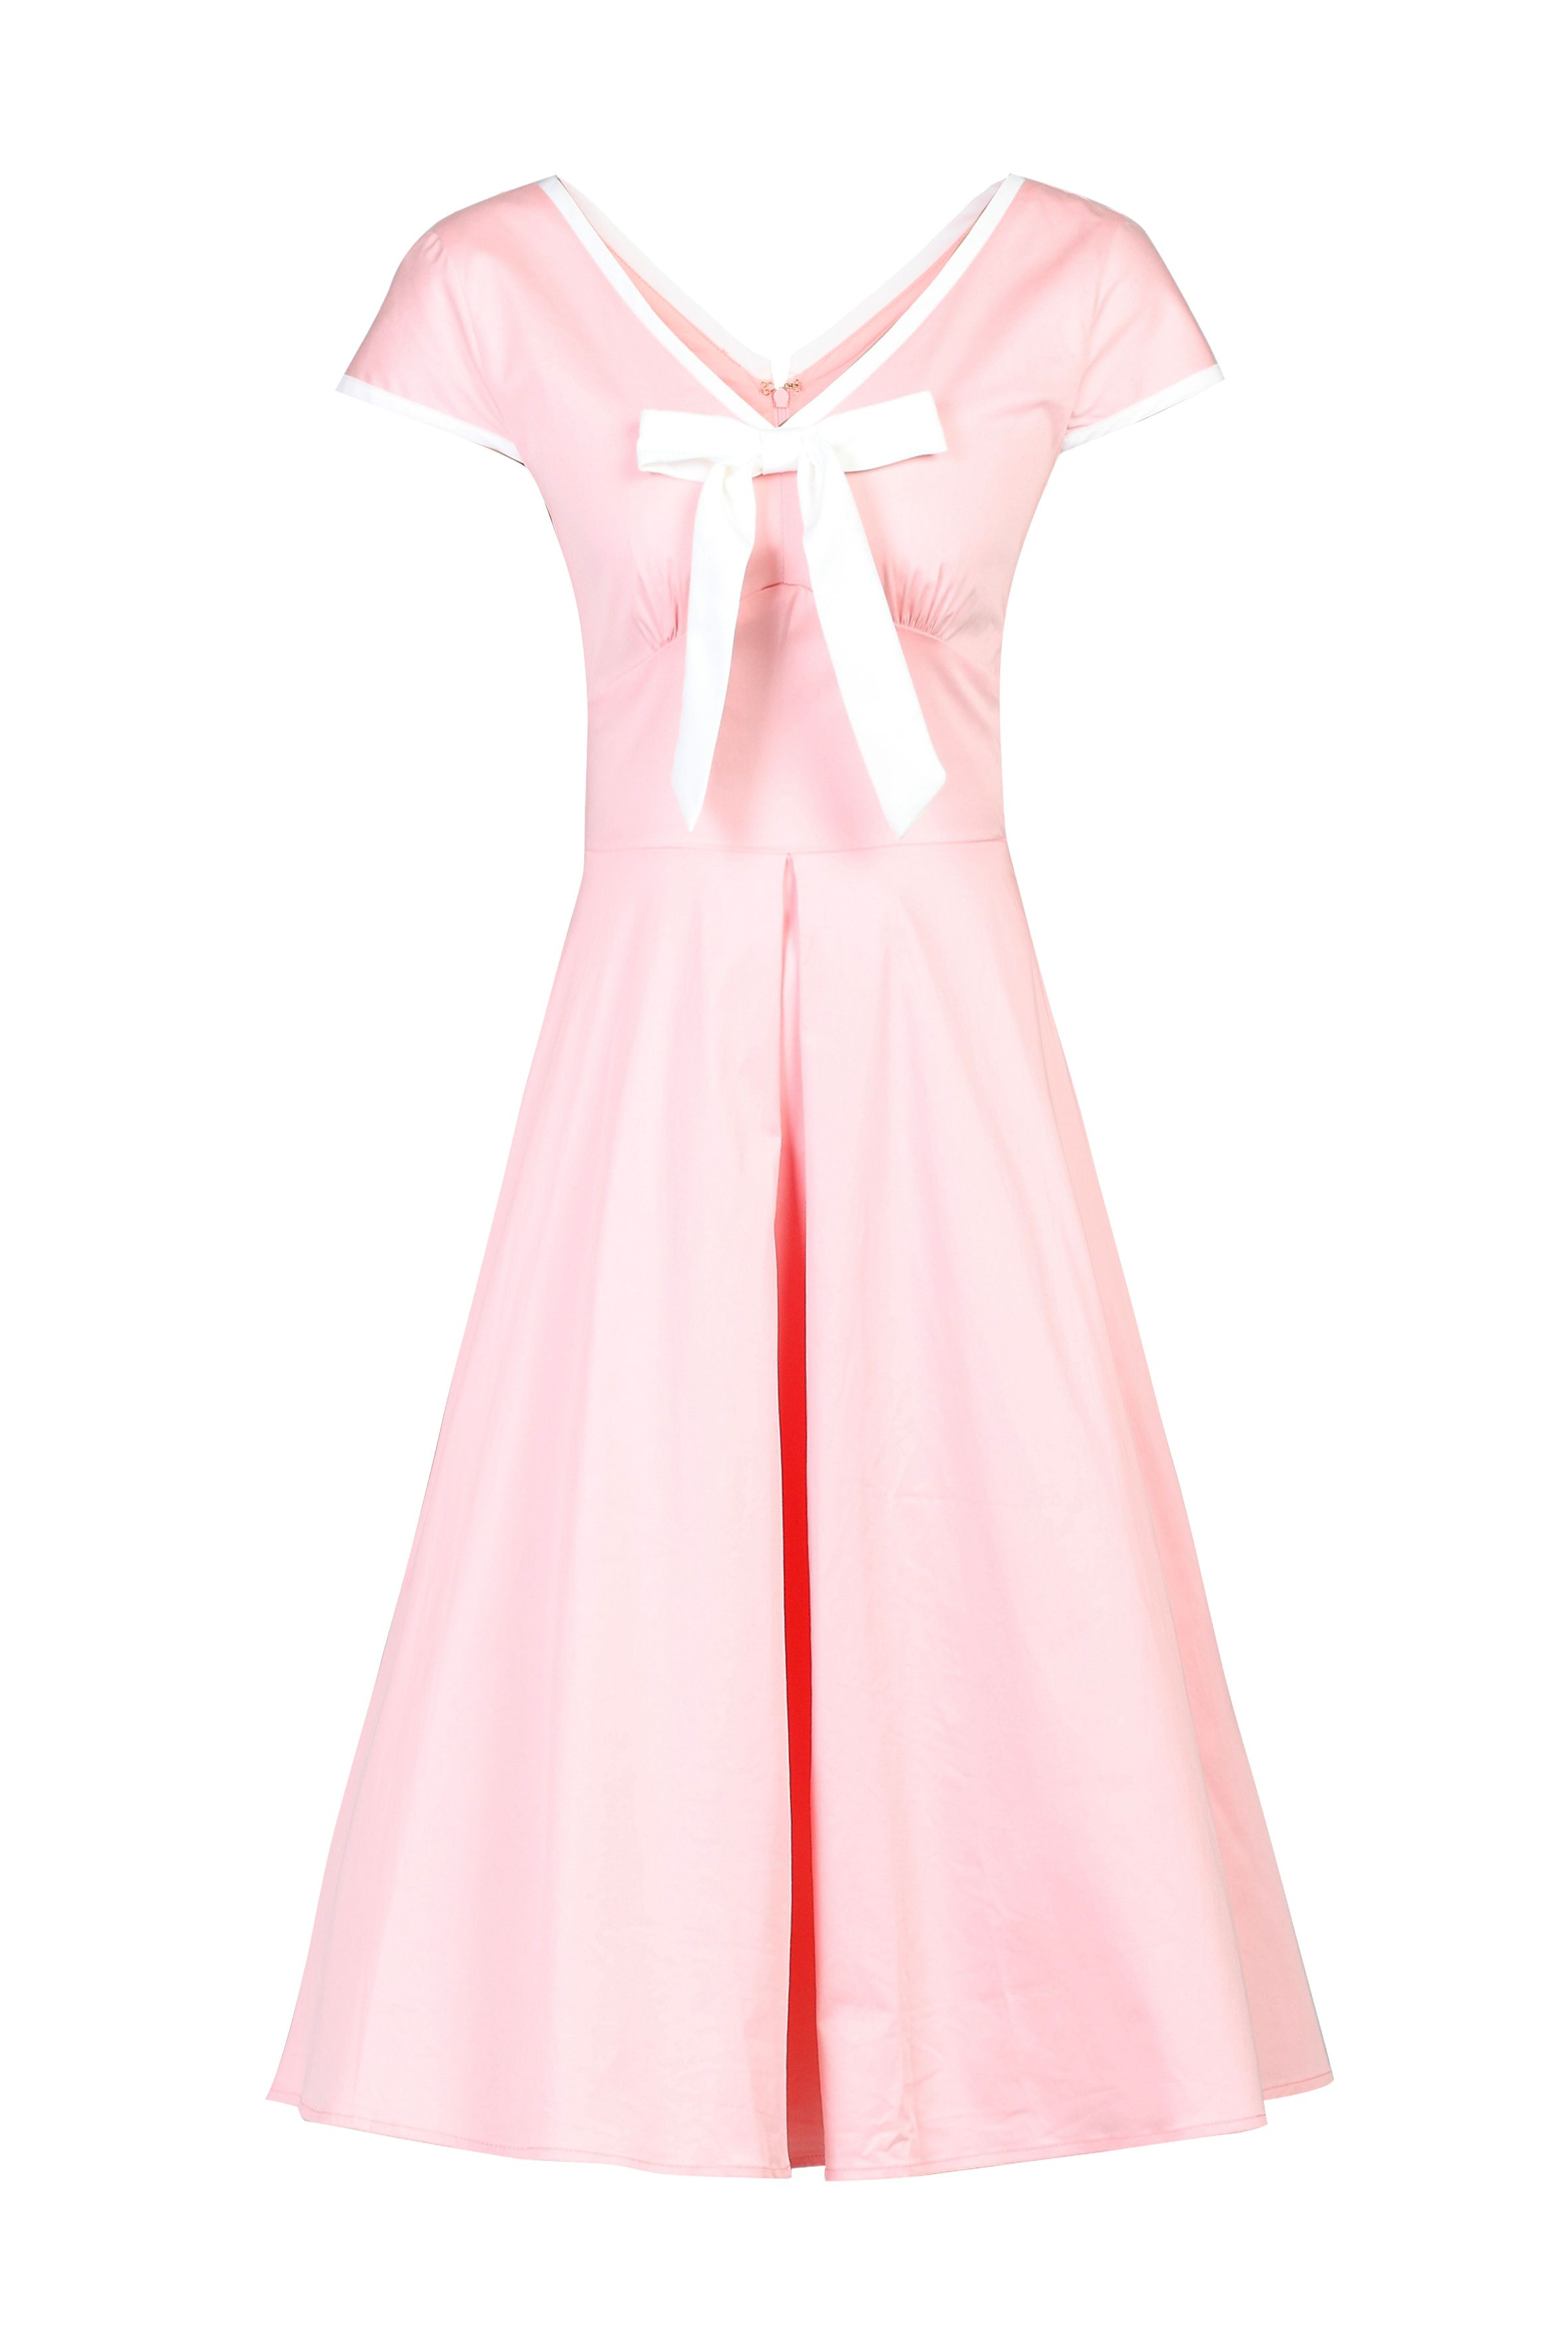 Jolie Moi Bow Detail 50s Flare Dress, Pink